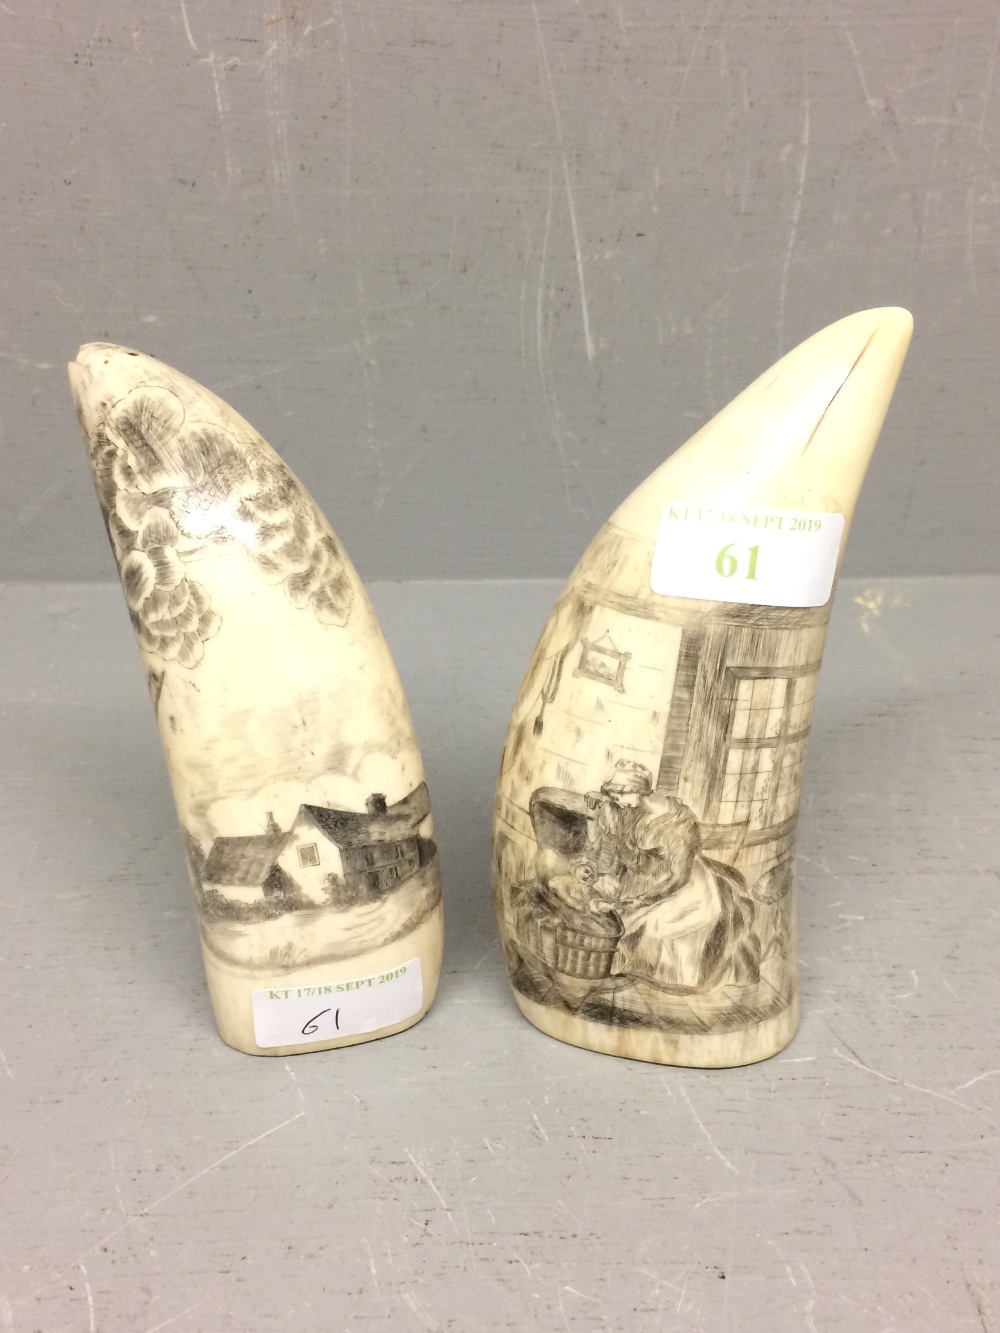 Lot 61 - Pair of walrus scrimshaw worked tusks (16 cm), 1 decorated with a cottage & the other with a